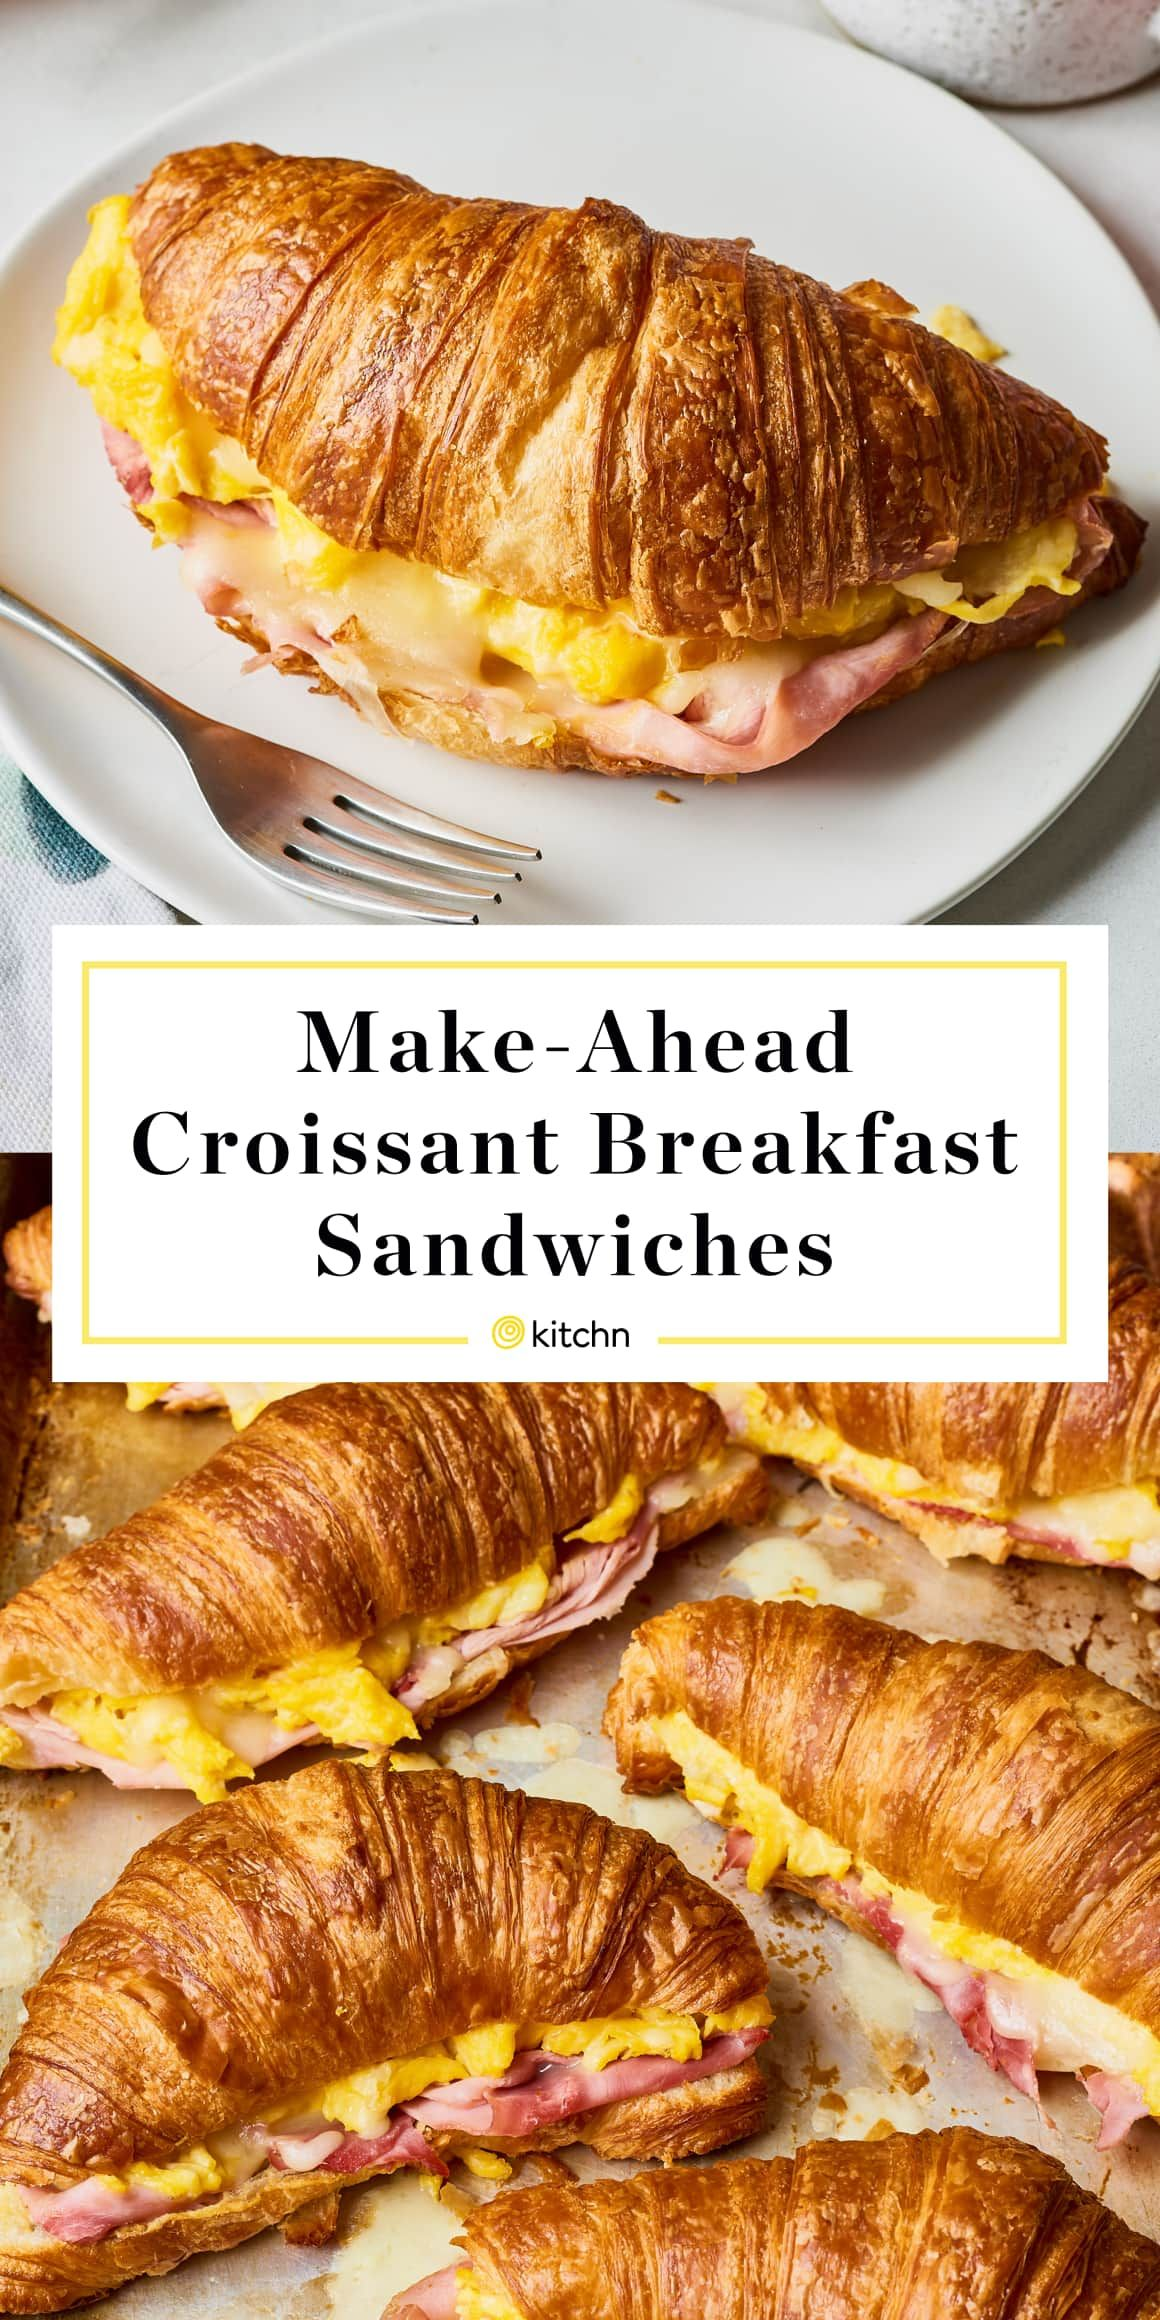 Croissant Breakfast Sandwich #sandwichrecipes